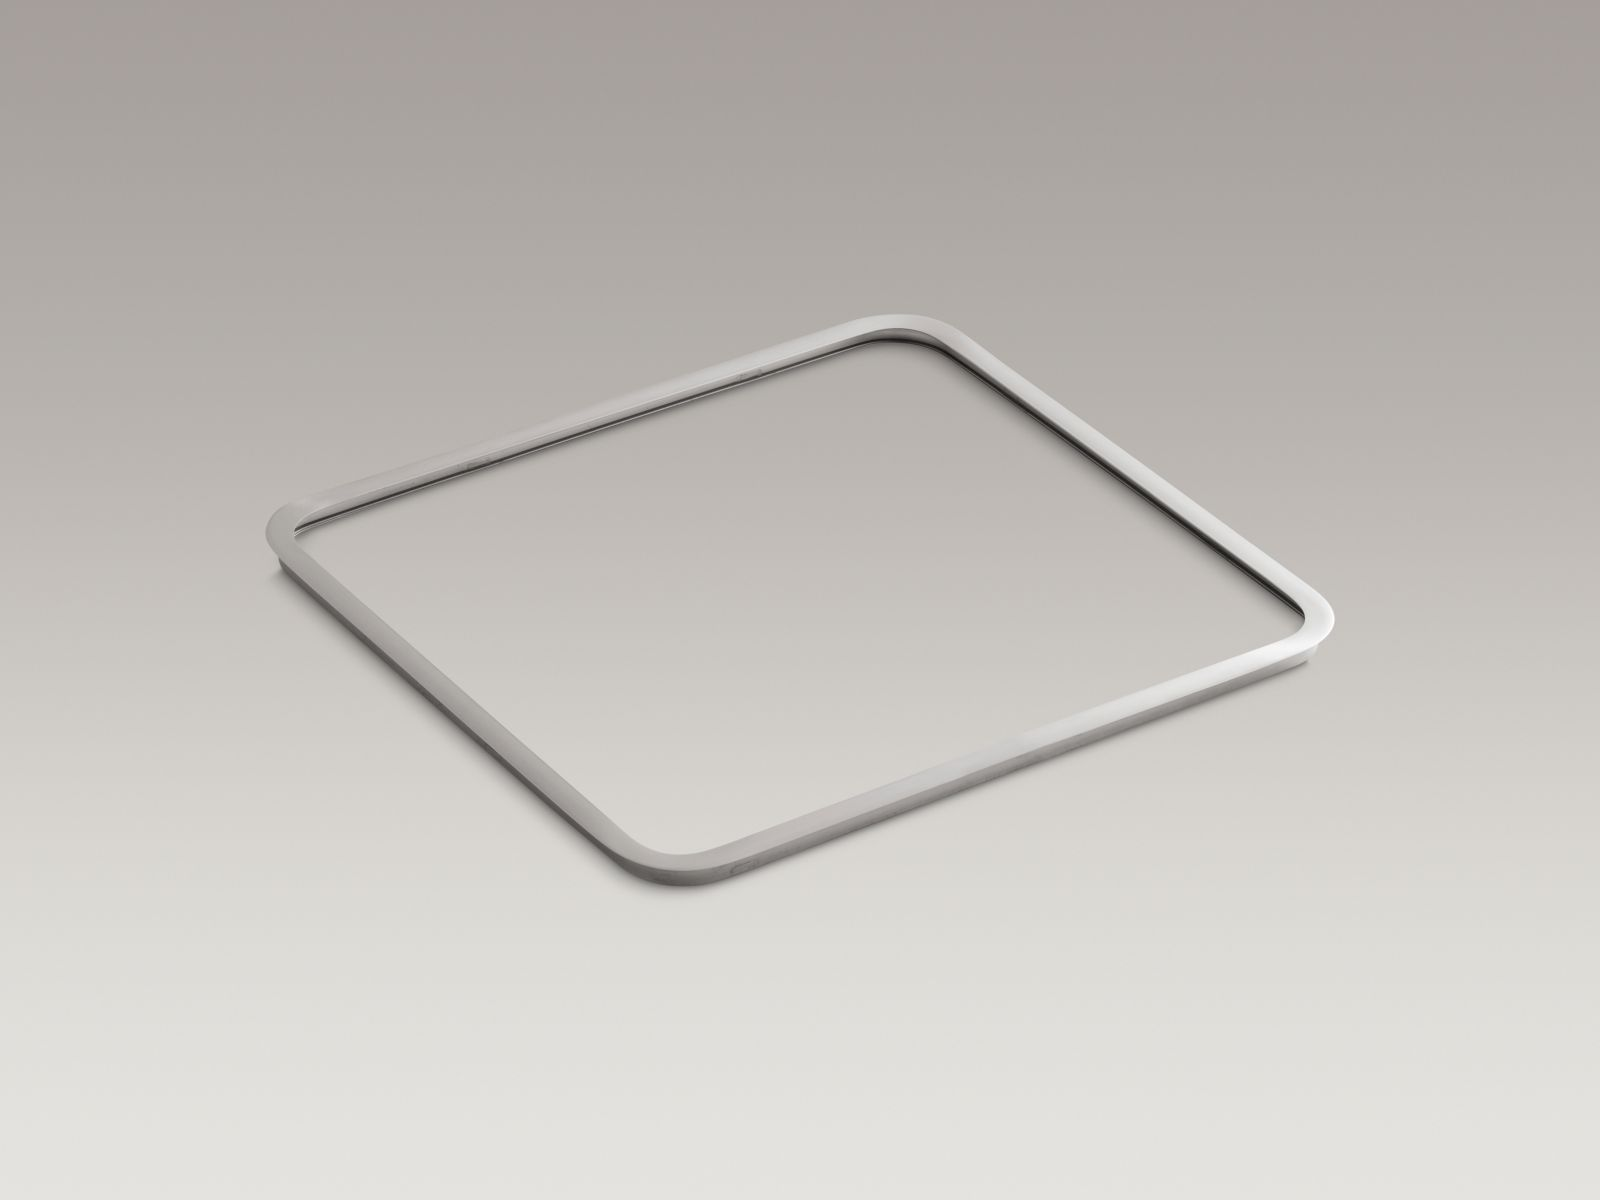 Kohler K-6688-NA Tahoe Bathroom Sink Metal Frame